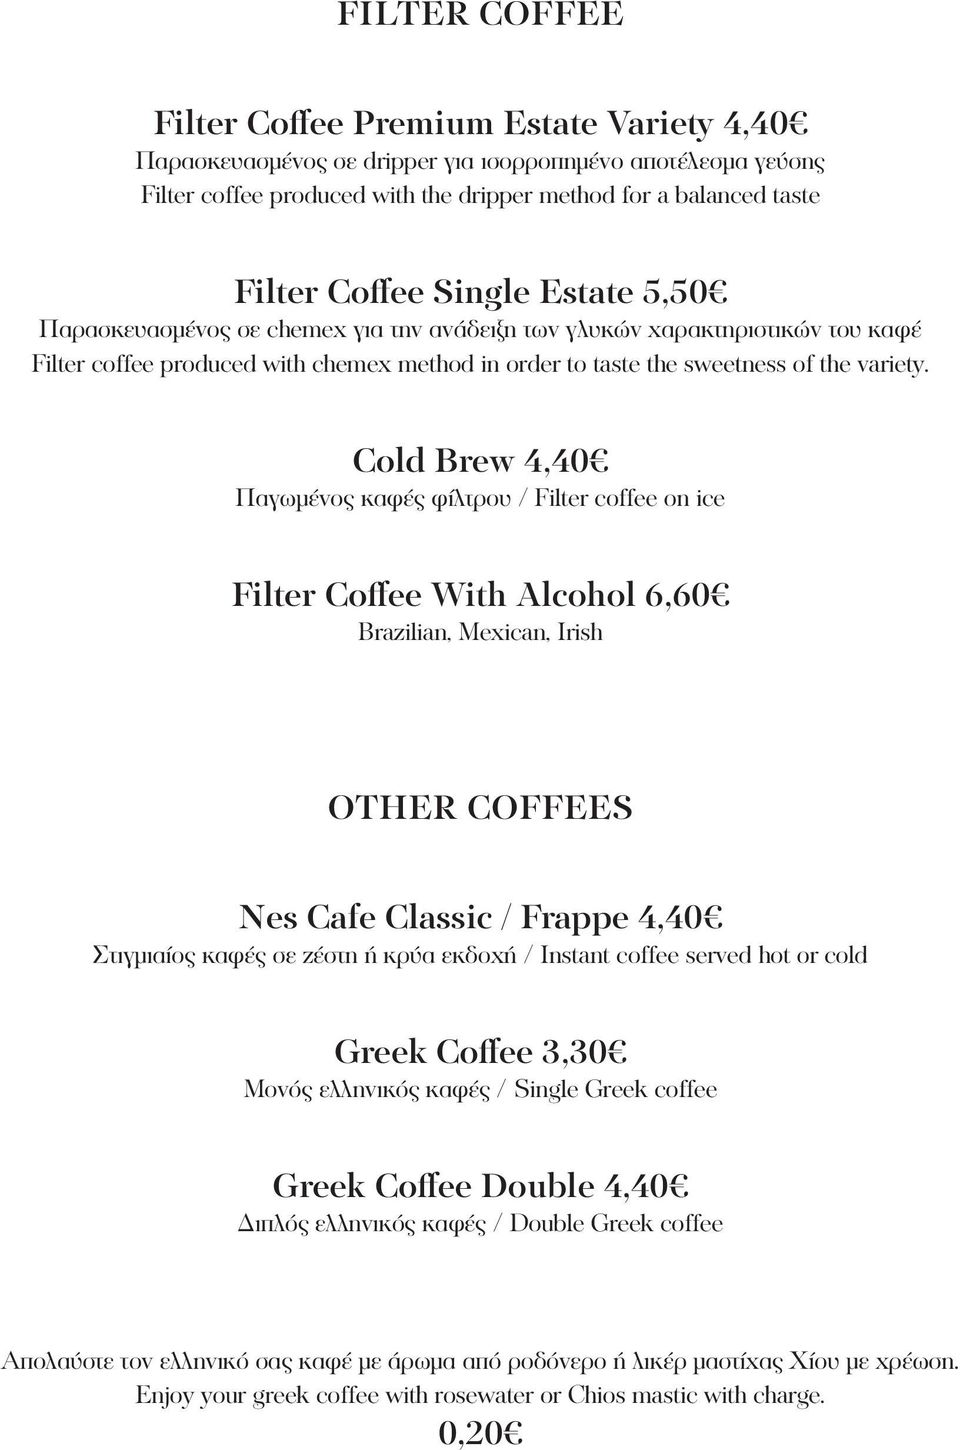 Cold Brew 4,40 Παγωμένος καφές φίλτρου / Filter coffee on ice Filter Coffee With Alcohol 6,60 Brazilian, Mexican, Irish Other Coffees Nes Cafe Classic / Frappe 4,40 Στιγμιαίος καφές σε ζέστη ή κρύα